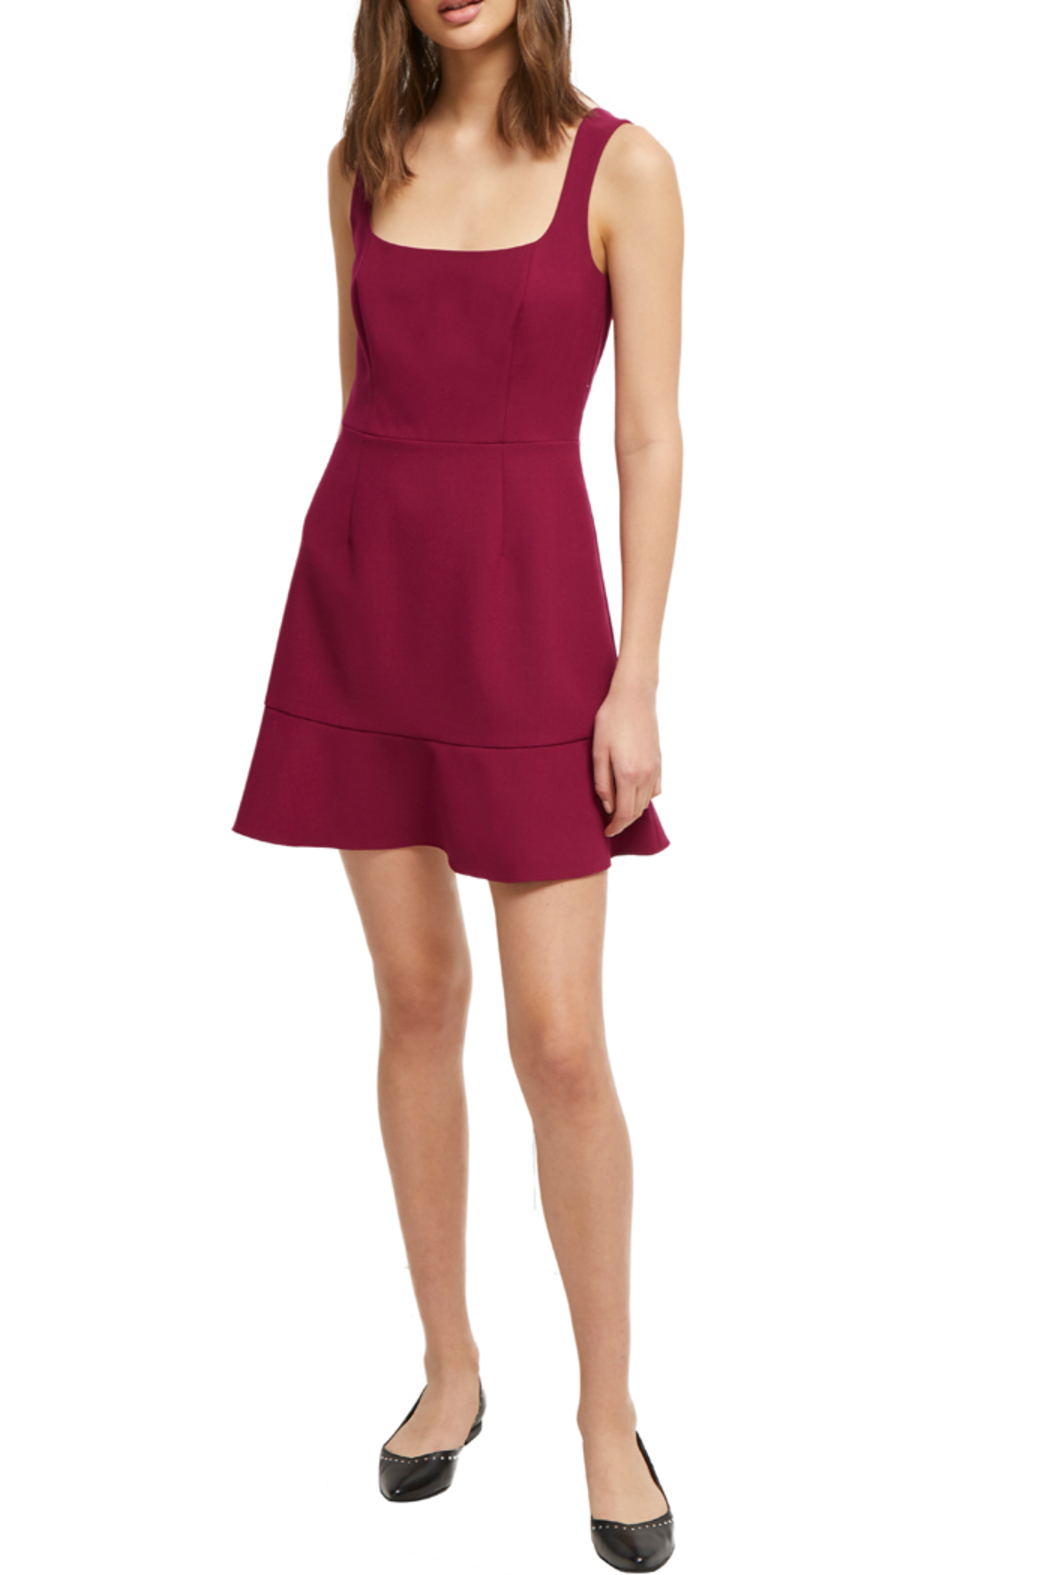 French Connection DOROTEA FLARE DRESS - Main Image